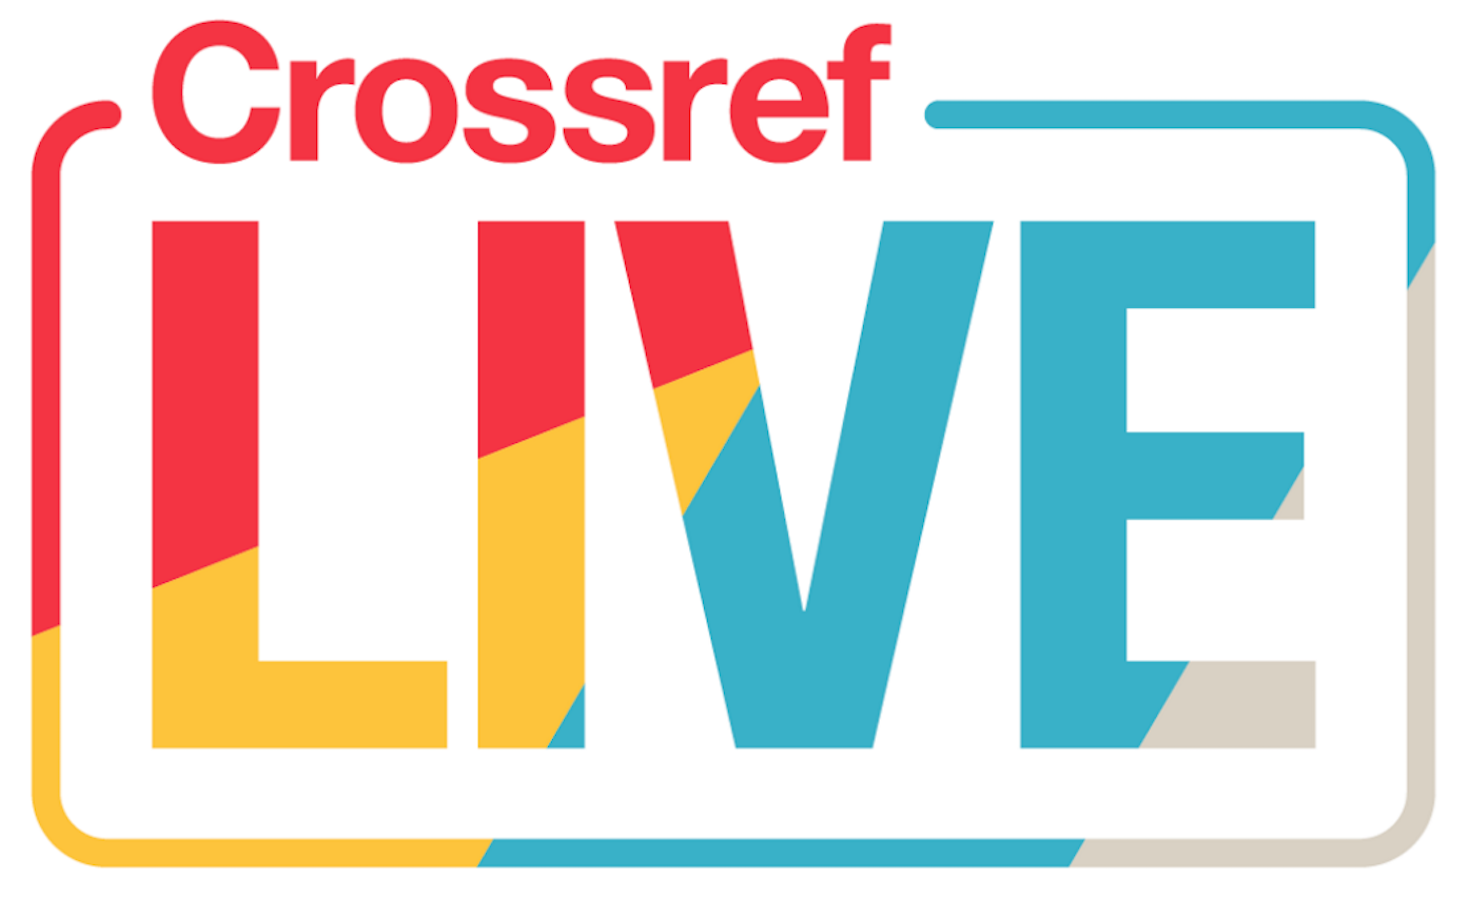 Crossref LIVE logo